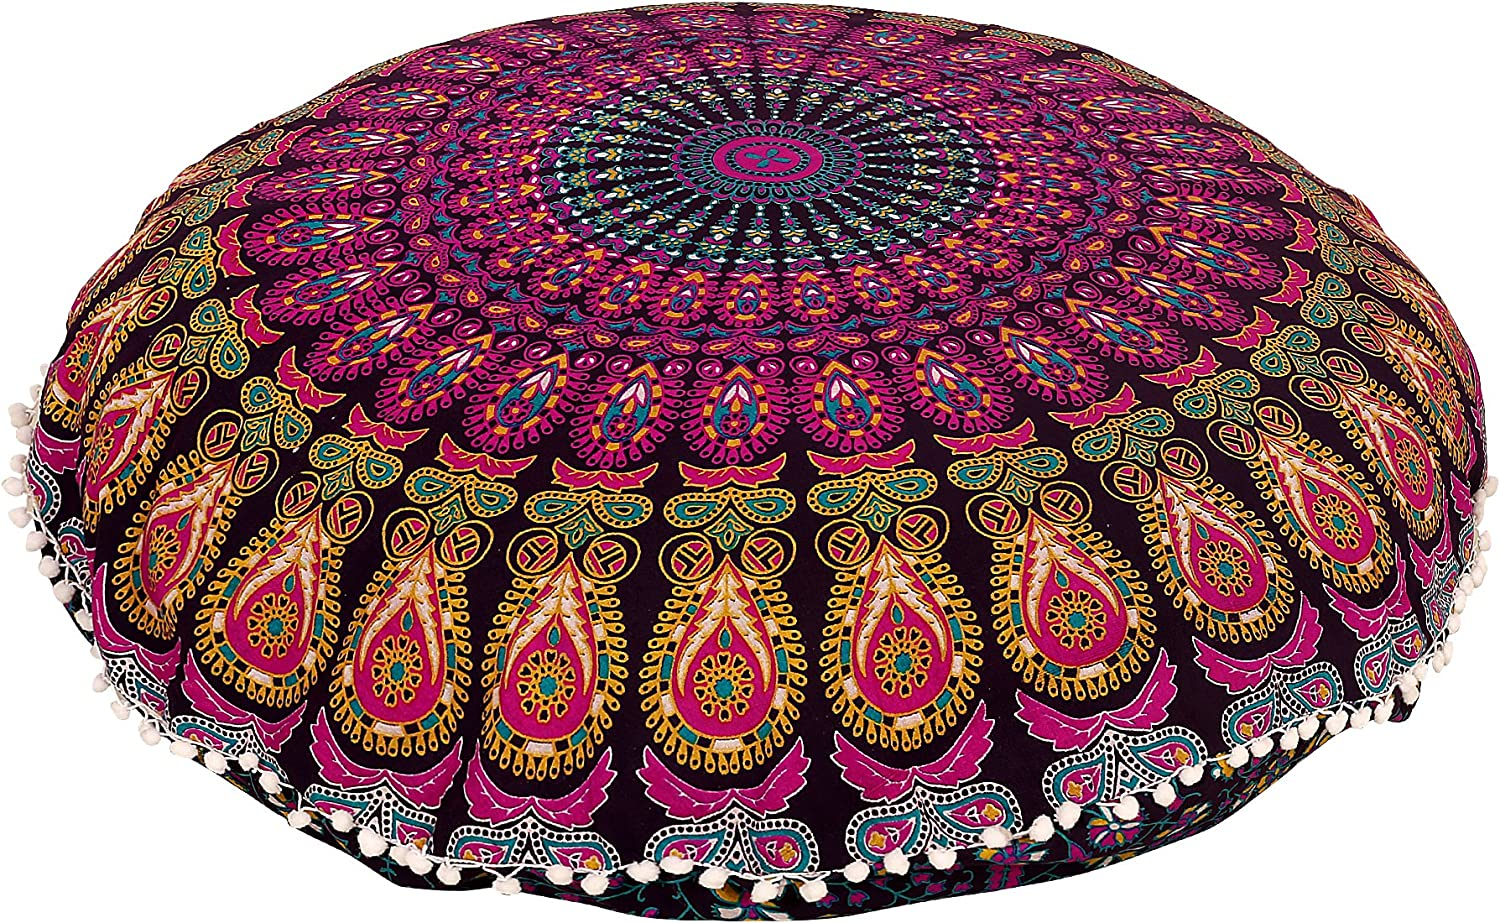 "Shubhlaxmifashion 32"" Purple Mandala Floor Pillow Cushion Seating Throw Cover Hippie Decorative Bohemian Ottoman Poufs, Pom Pom Pillow Cases,Boho Indian"